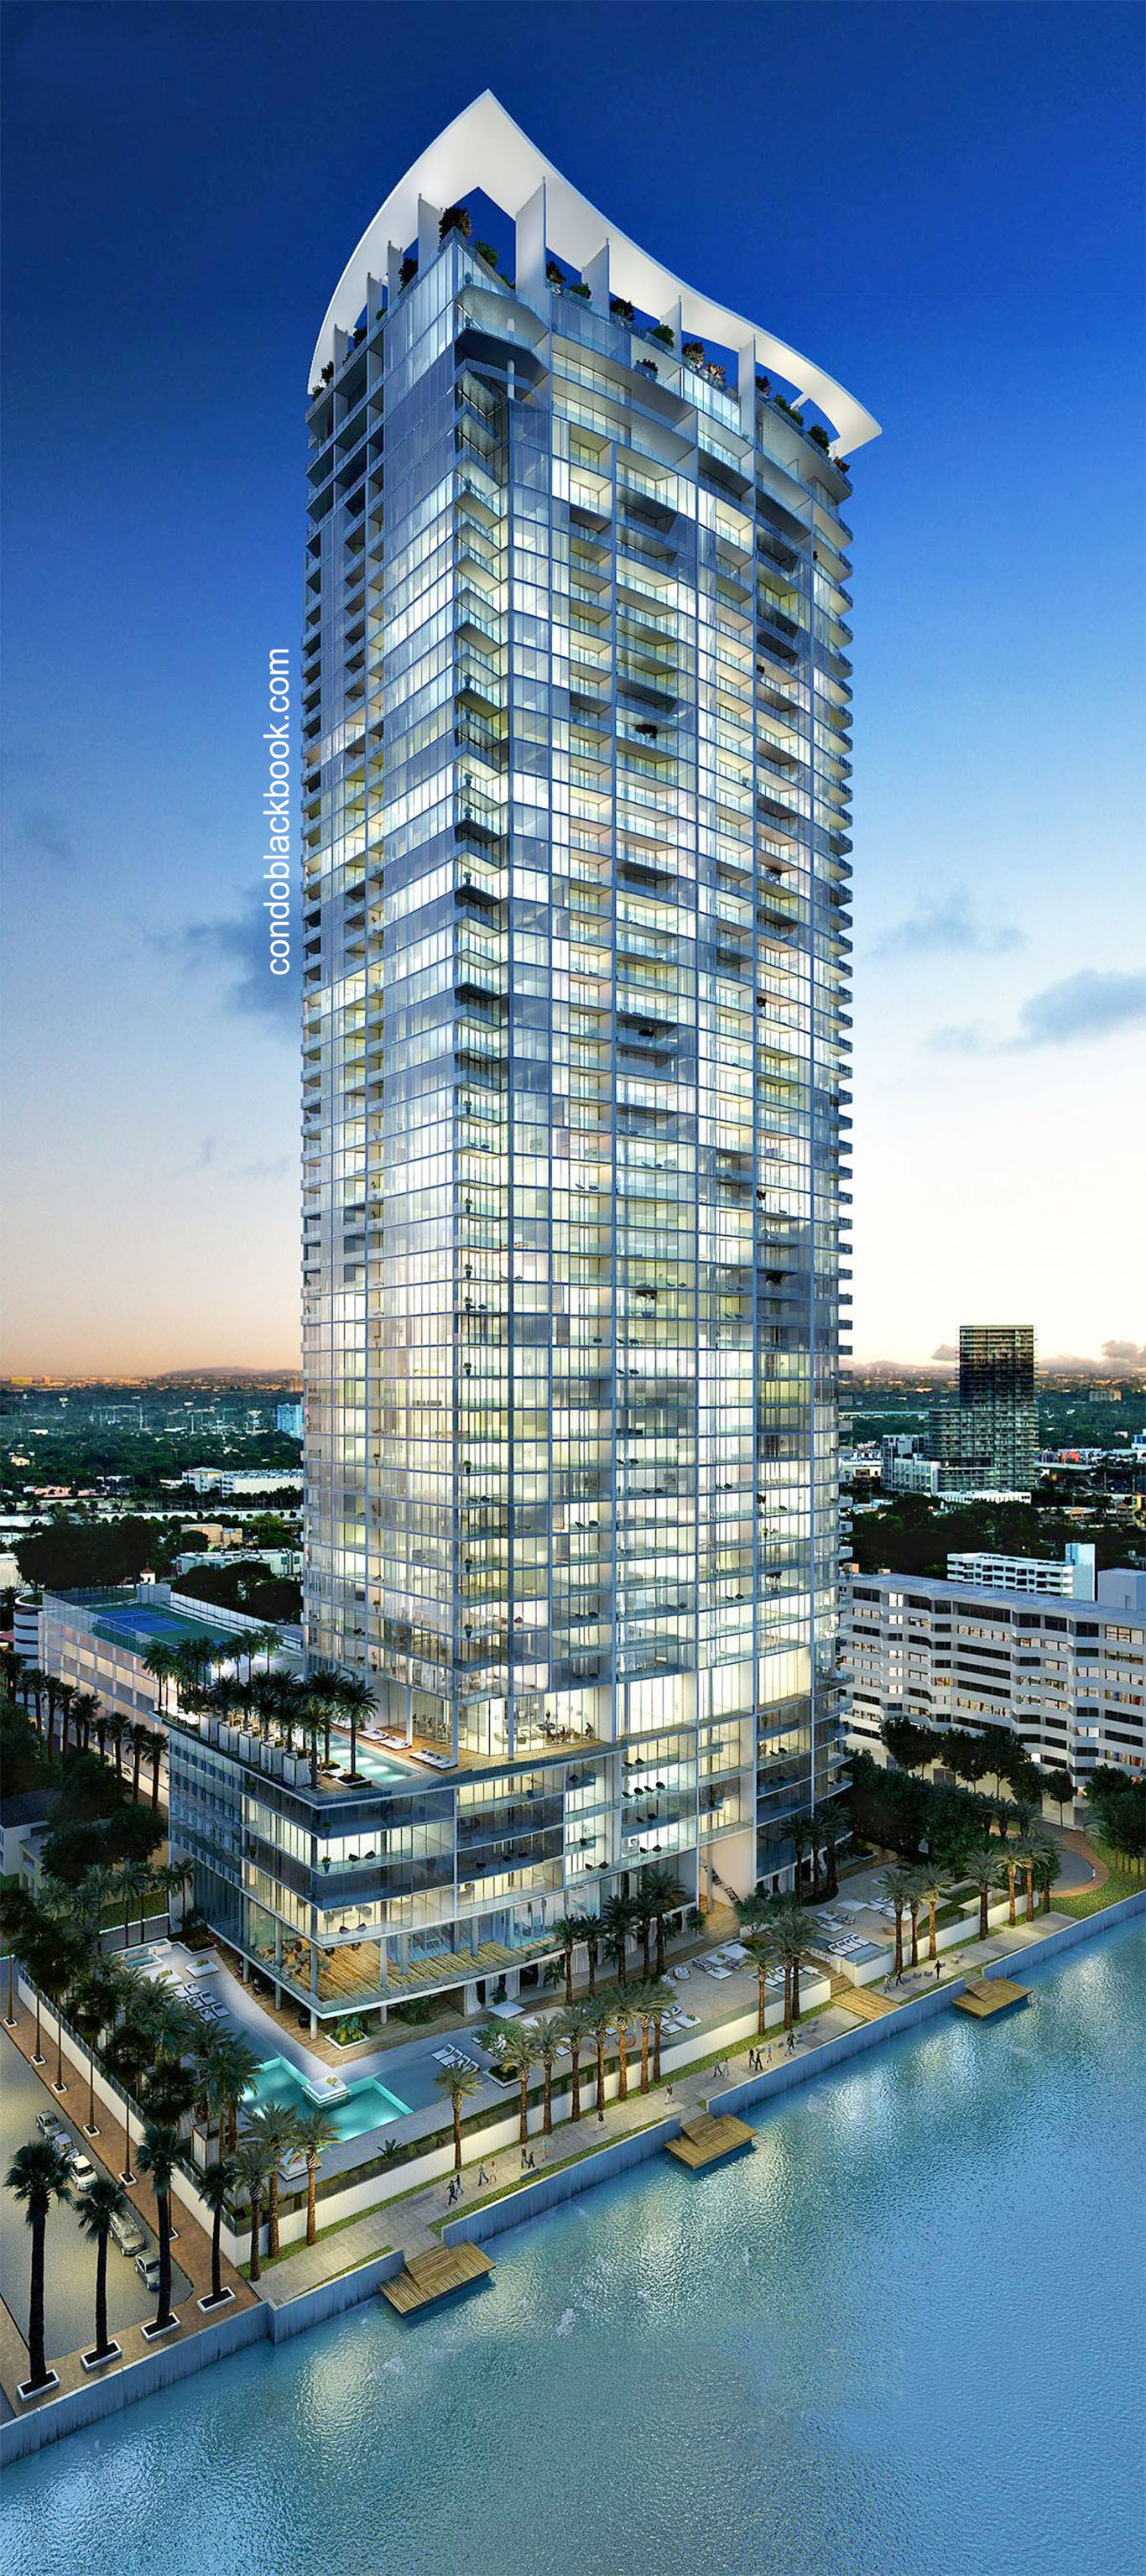 Building in Miami, Downtown Miami, Biscayne Beach